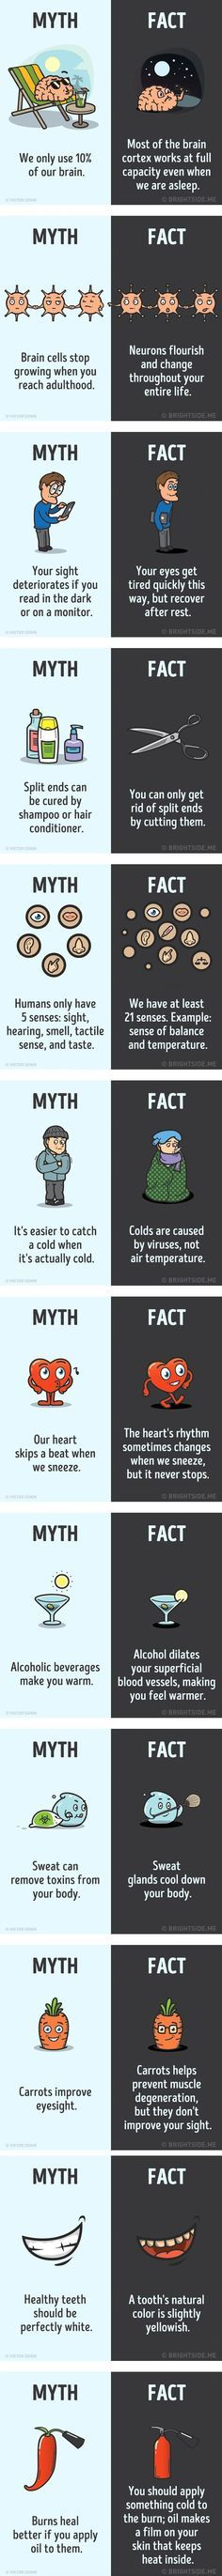 12 myths about the human body that we should forget - 9GAG